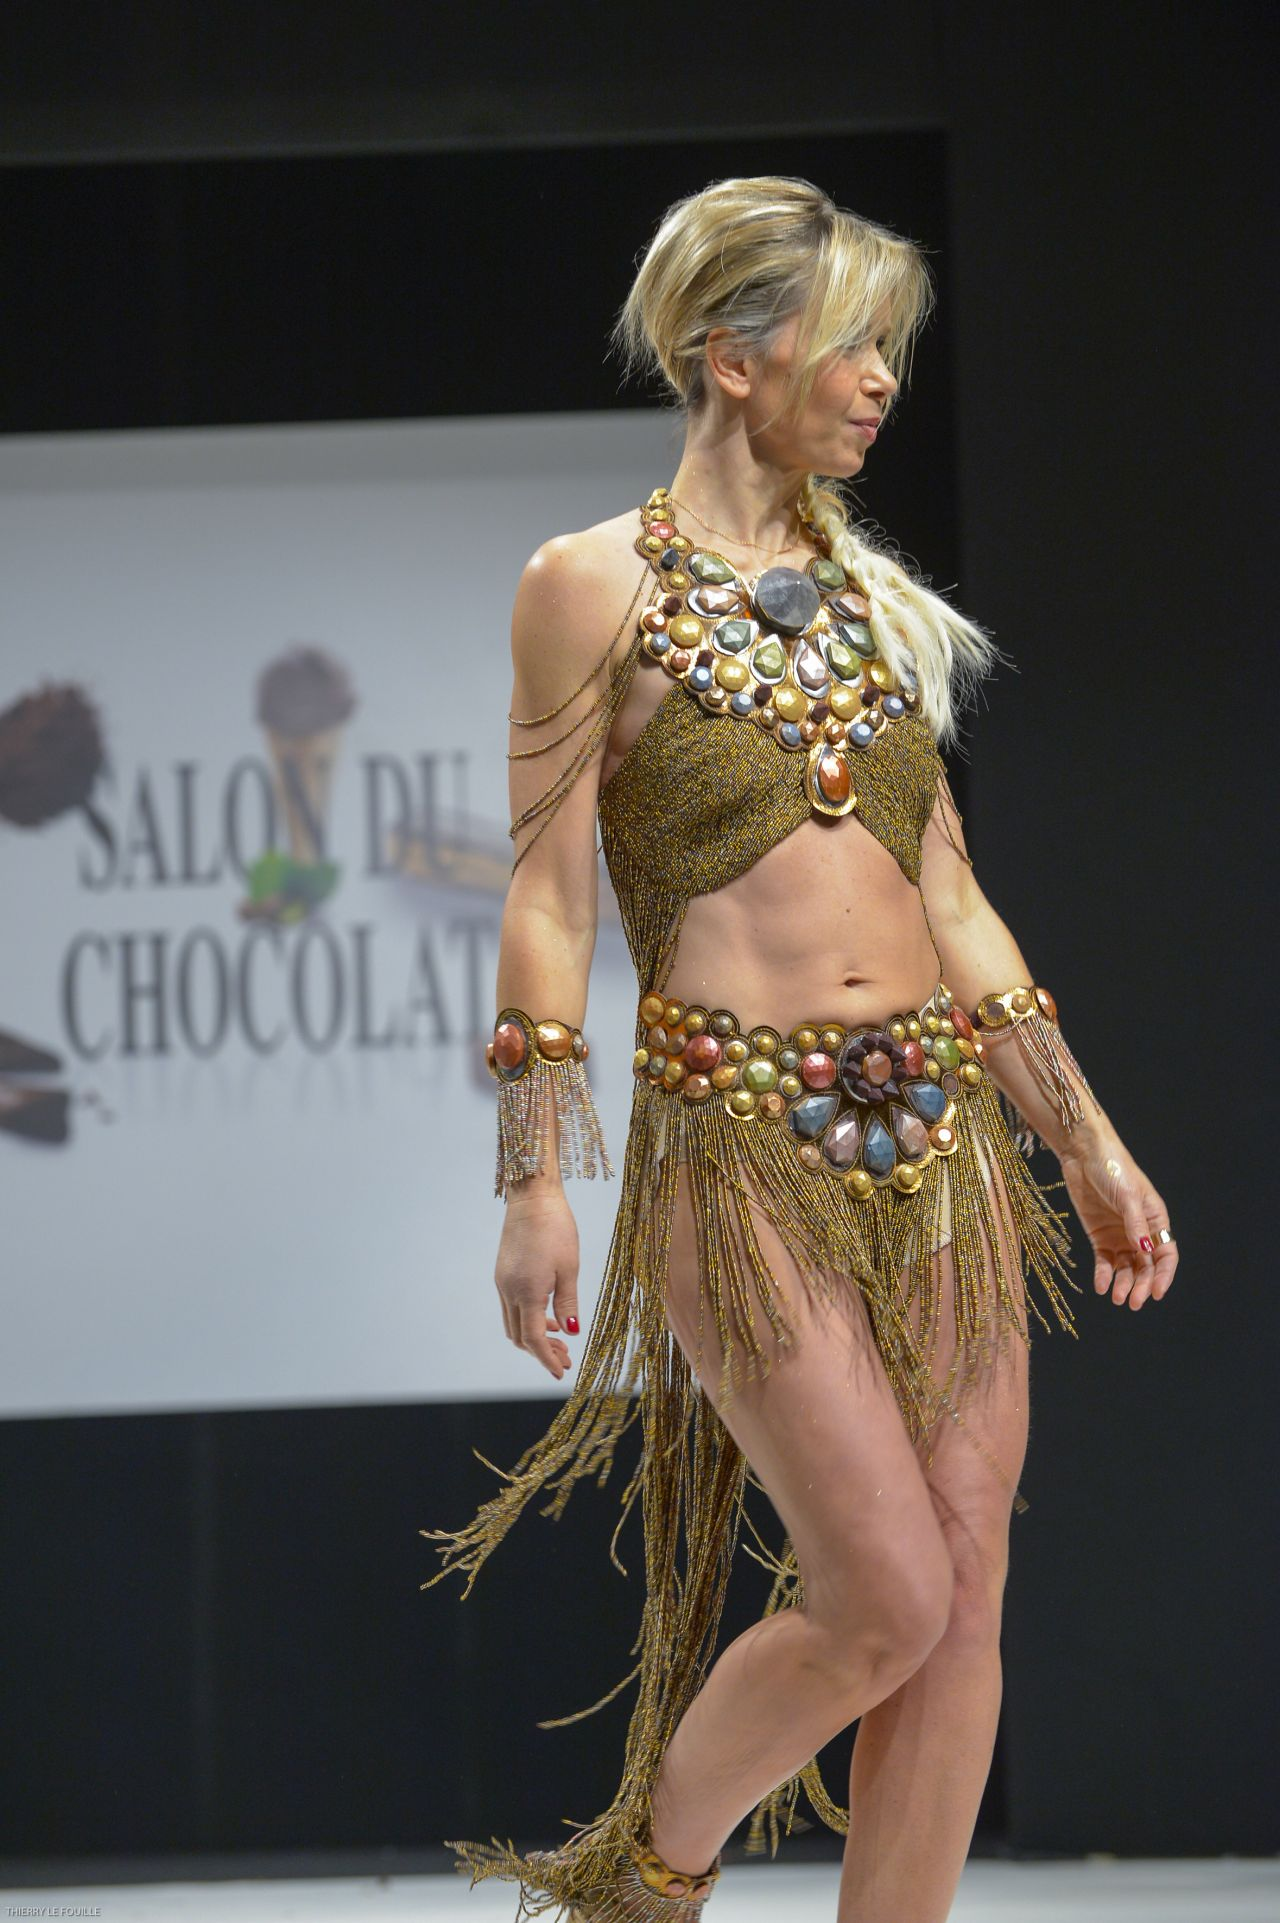 Salon Du Chocolat 2017 Paris Romane Serda Salon Du Chocolat Paris 2017 Chocolate